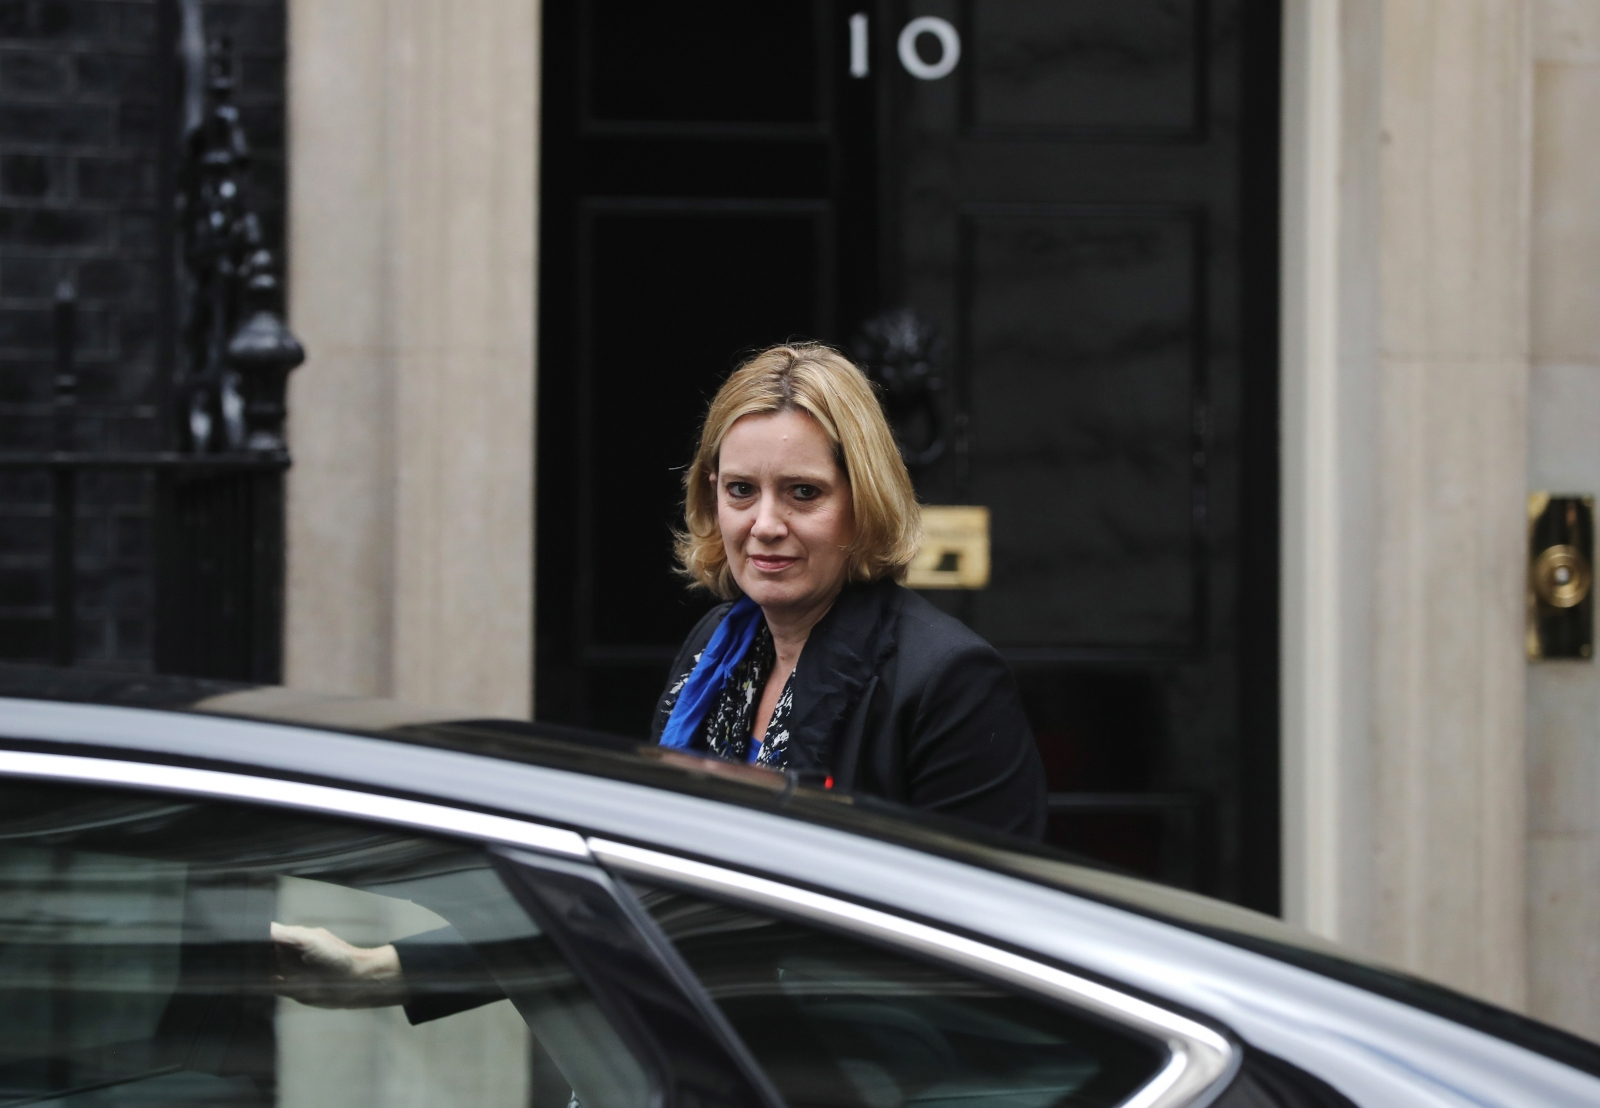 Amber Rudd outside Downing Street